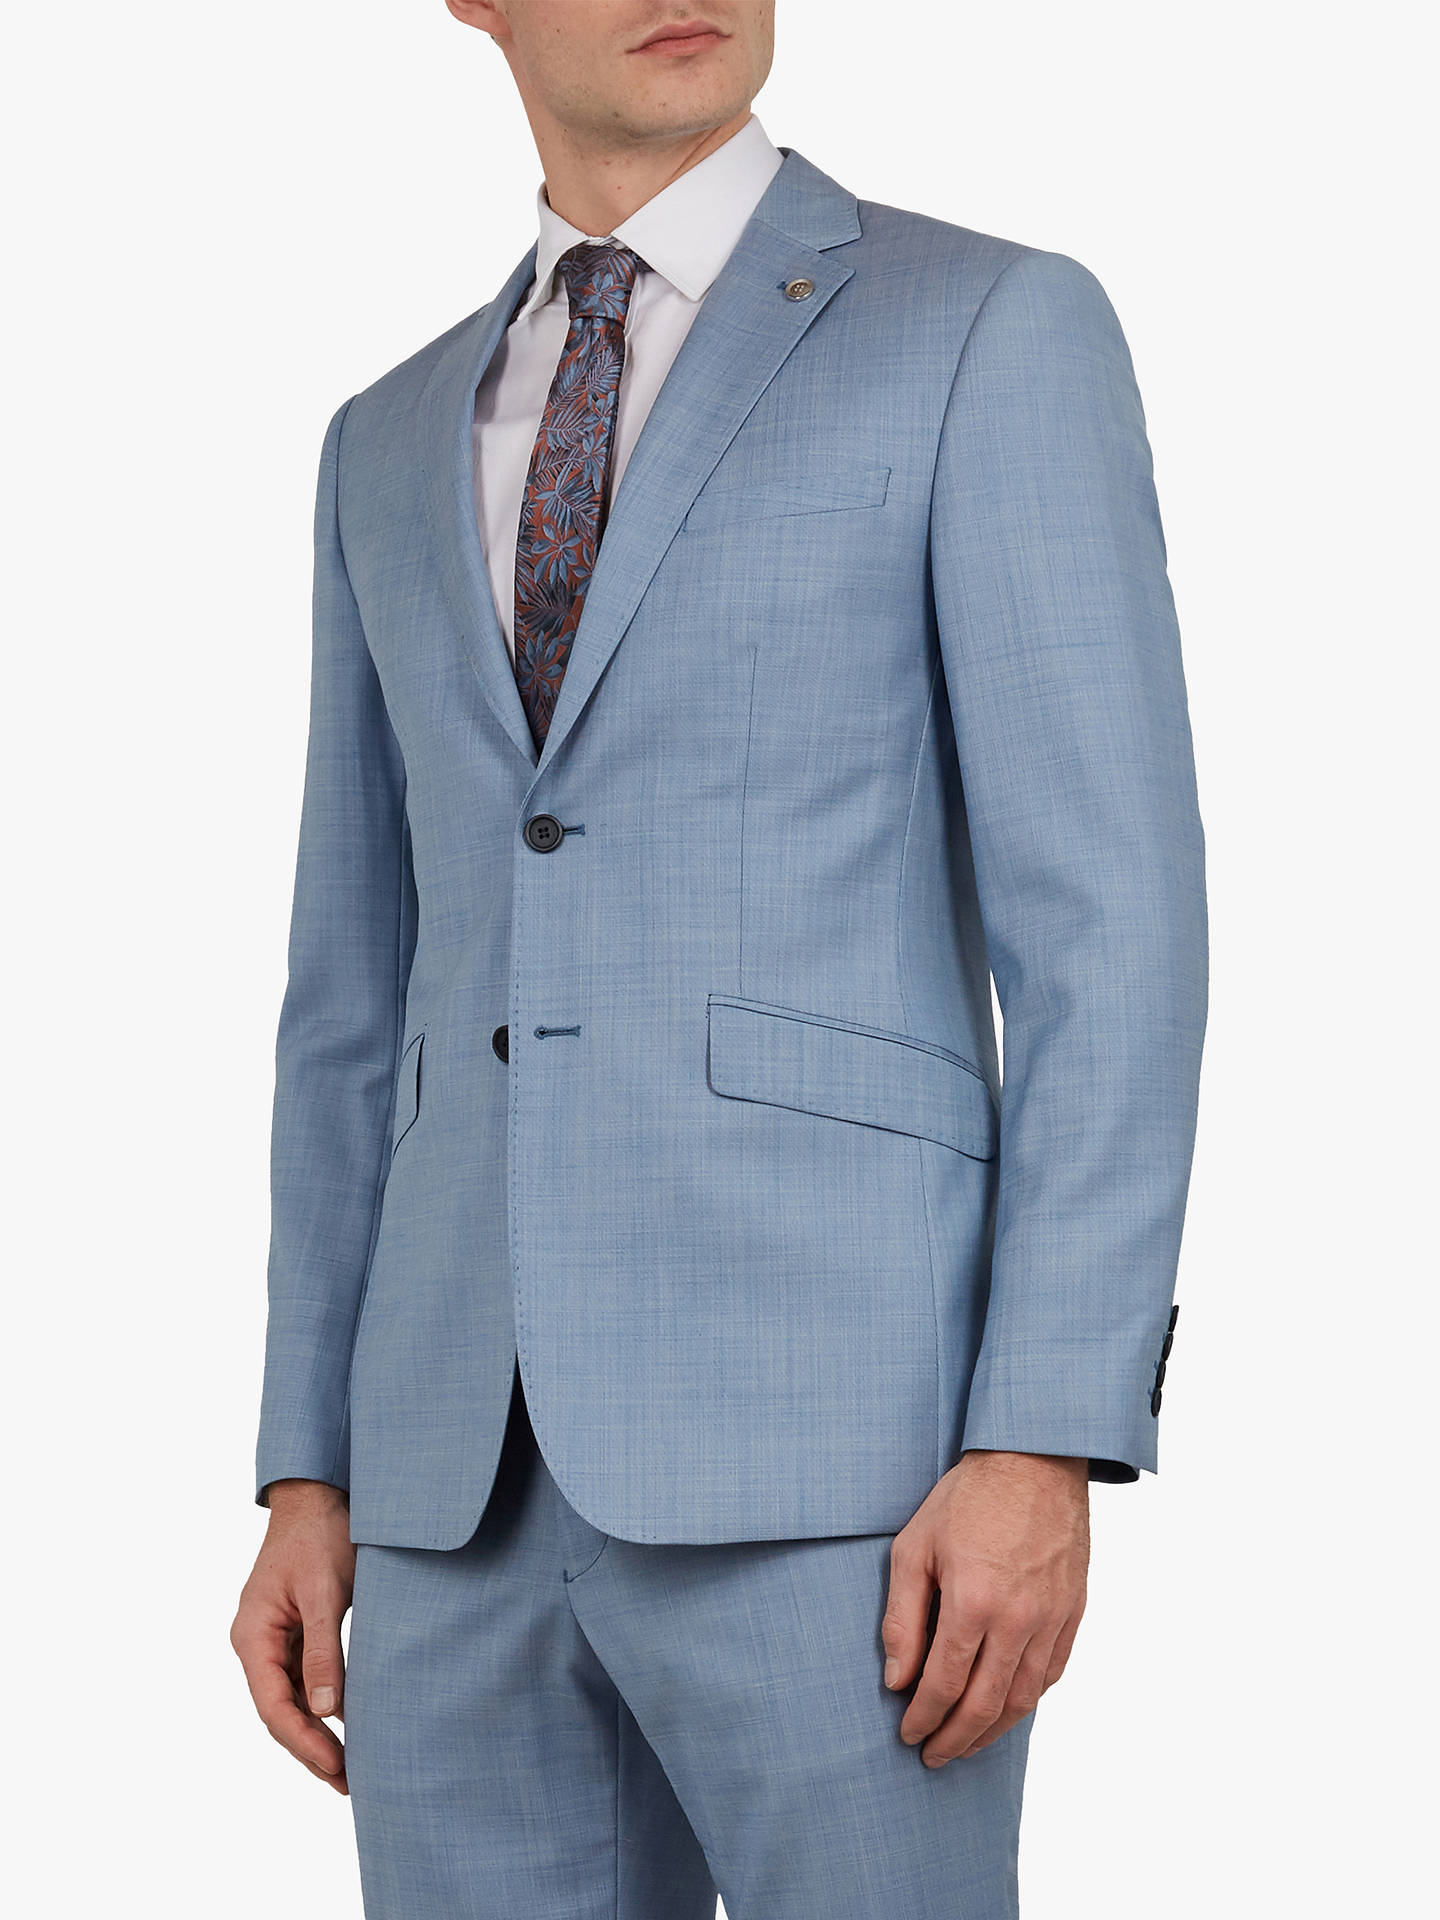 5395c577ed461 Buy Ted Baker Steadyj Sharkskin Tailored Suit Jacket